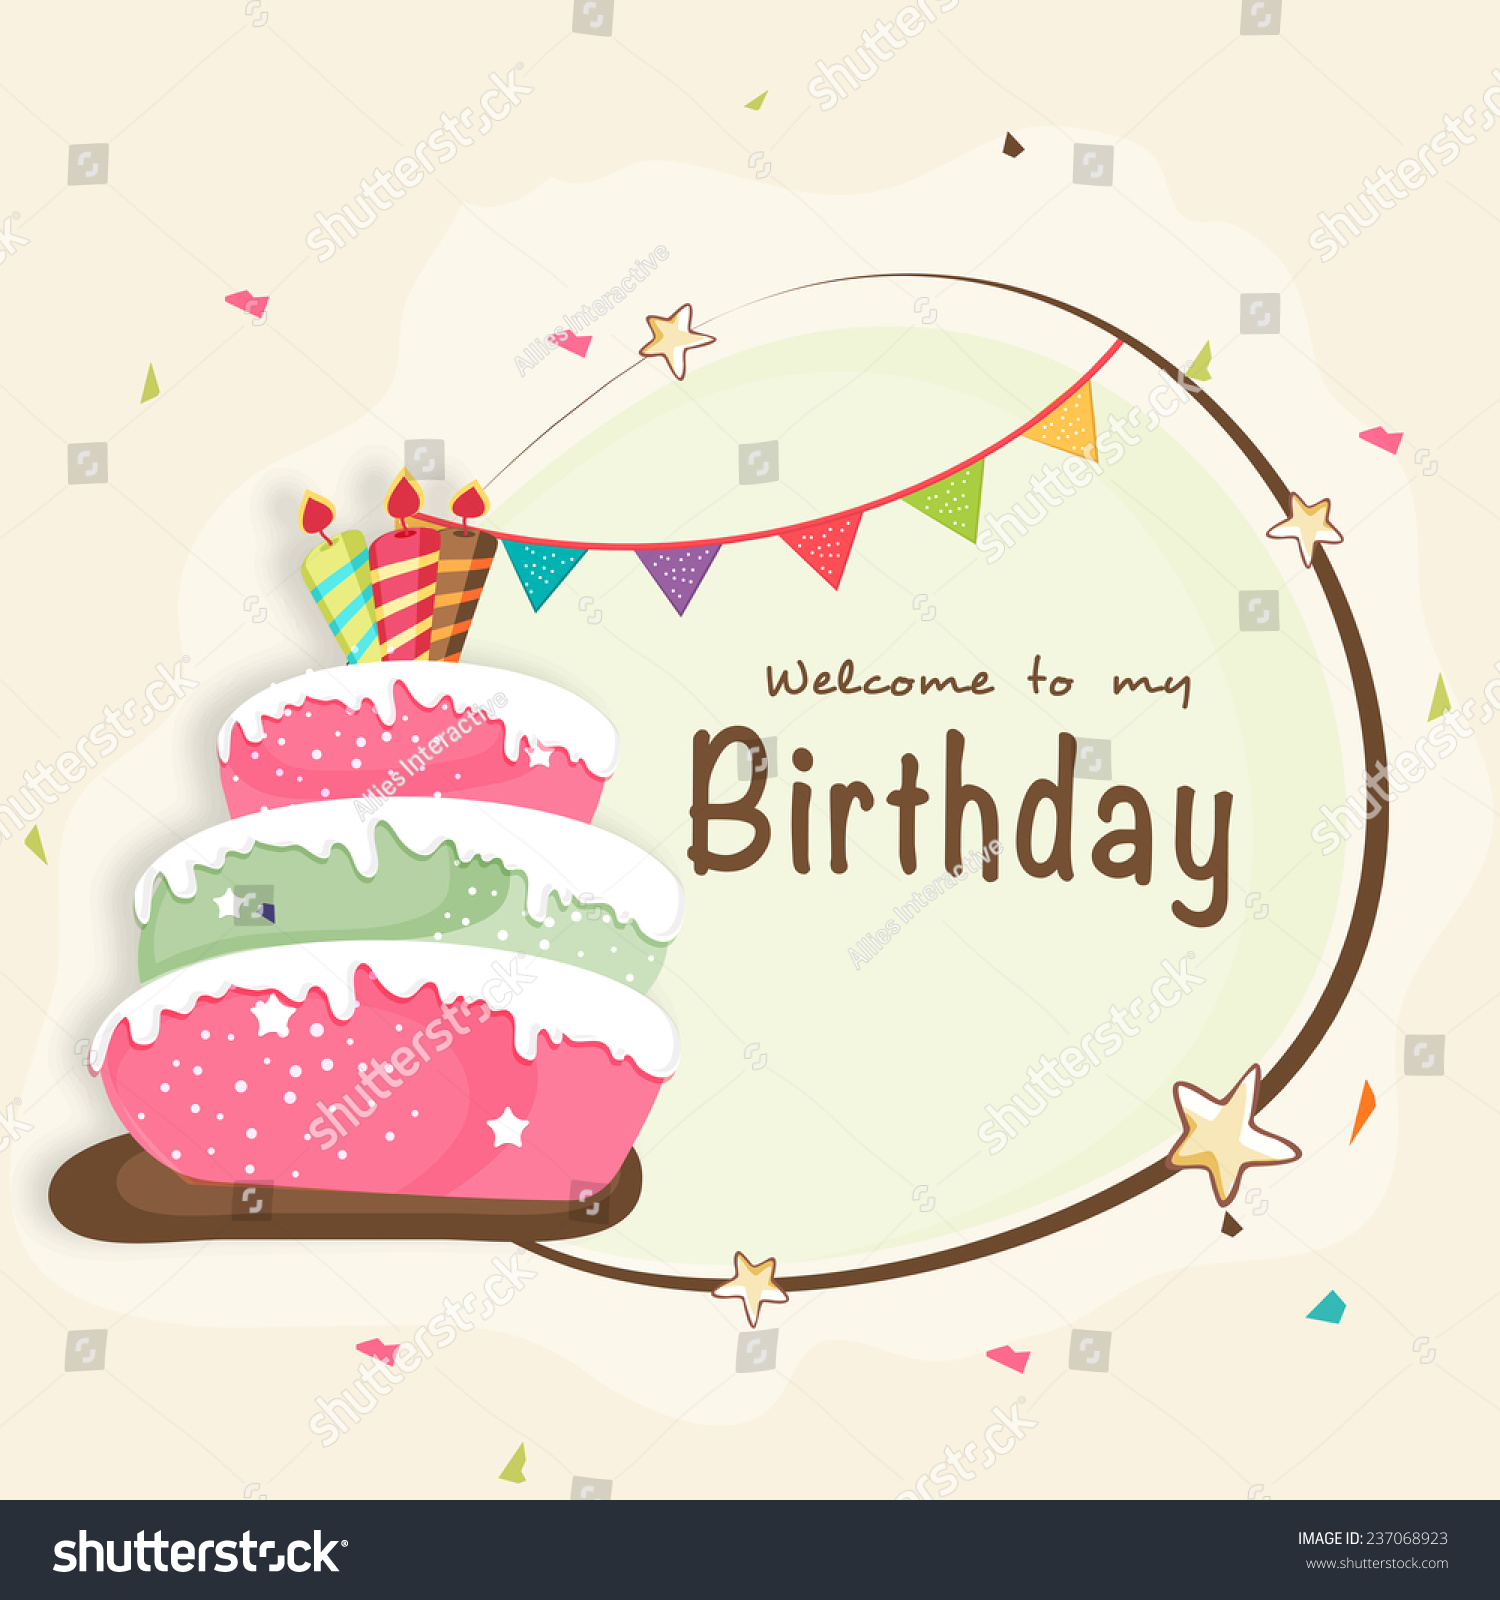 Happy birthday celebration invitation card design stock vector happy birthday celebration invitation card design with party flag delicious cake and space for your stopboris Choice Image